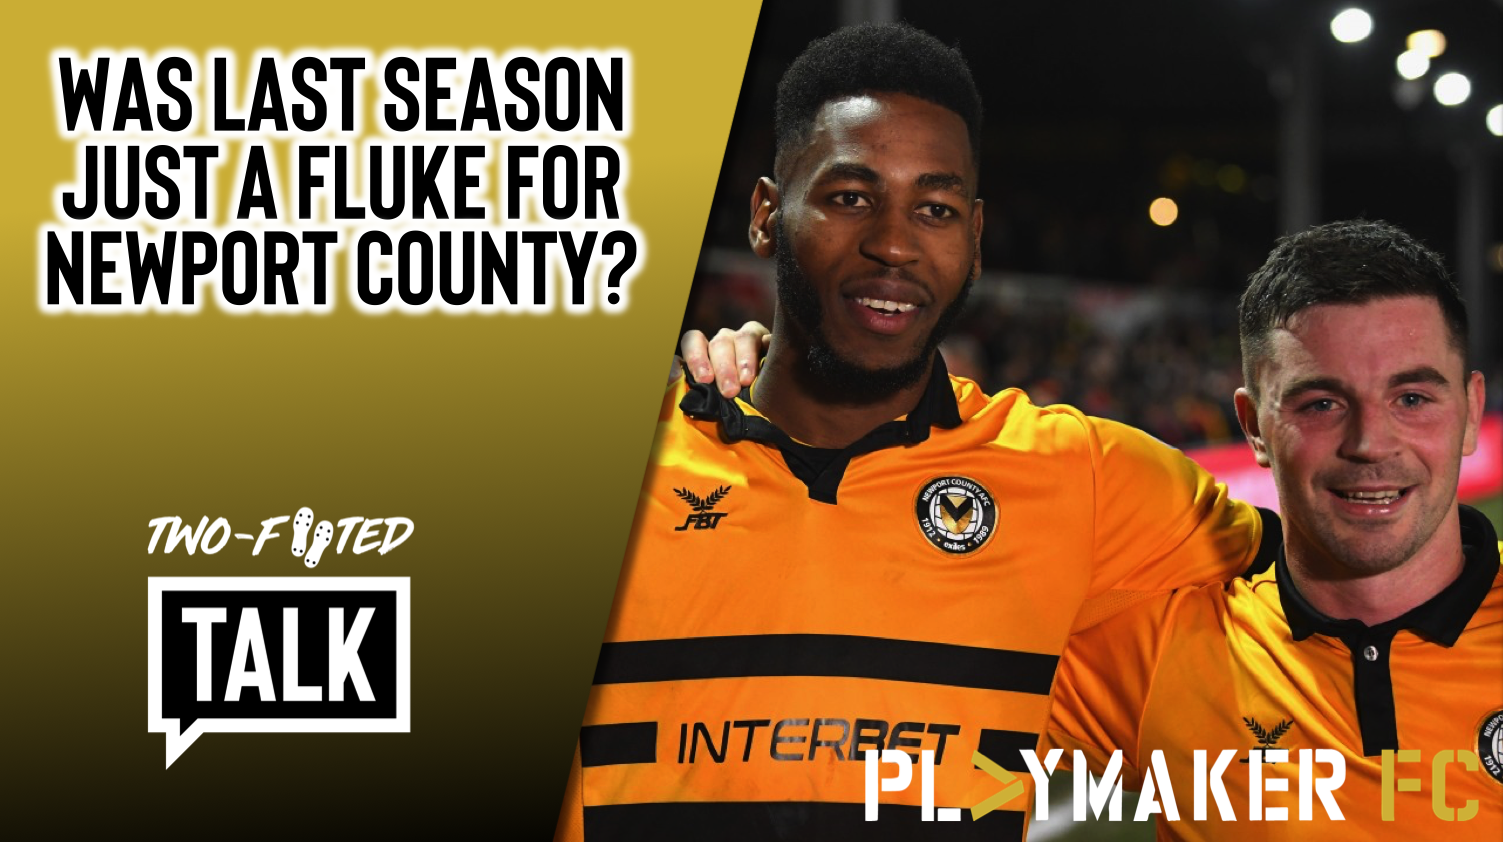 Two-Footed Talk | Was last season nothing more than a fluke for Newport County?